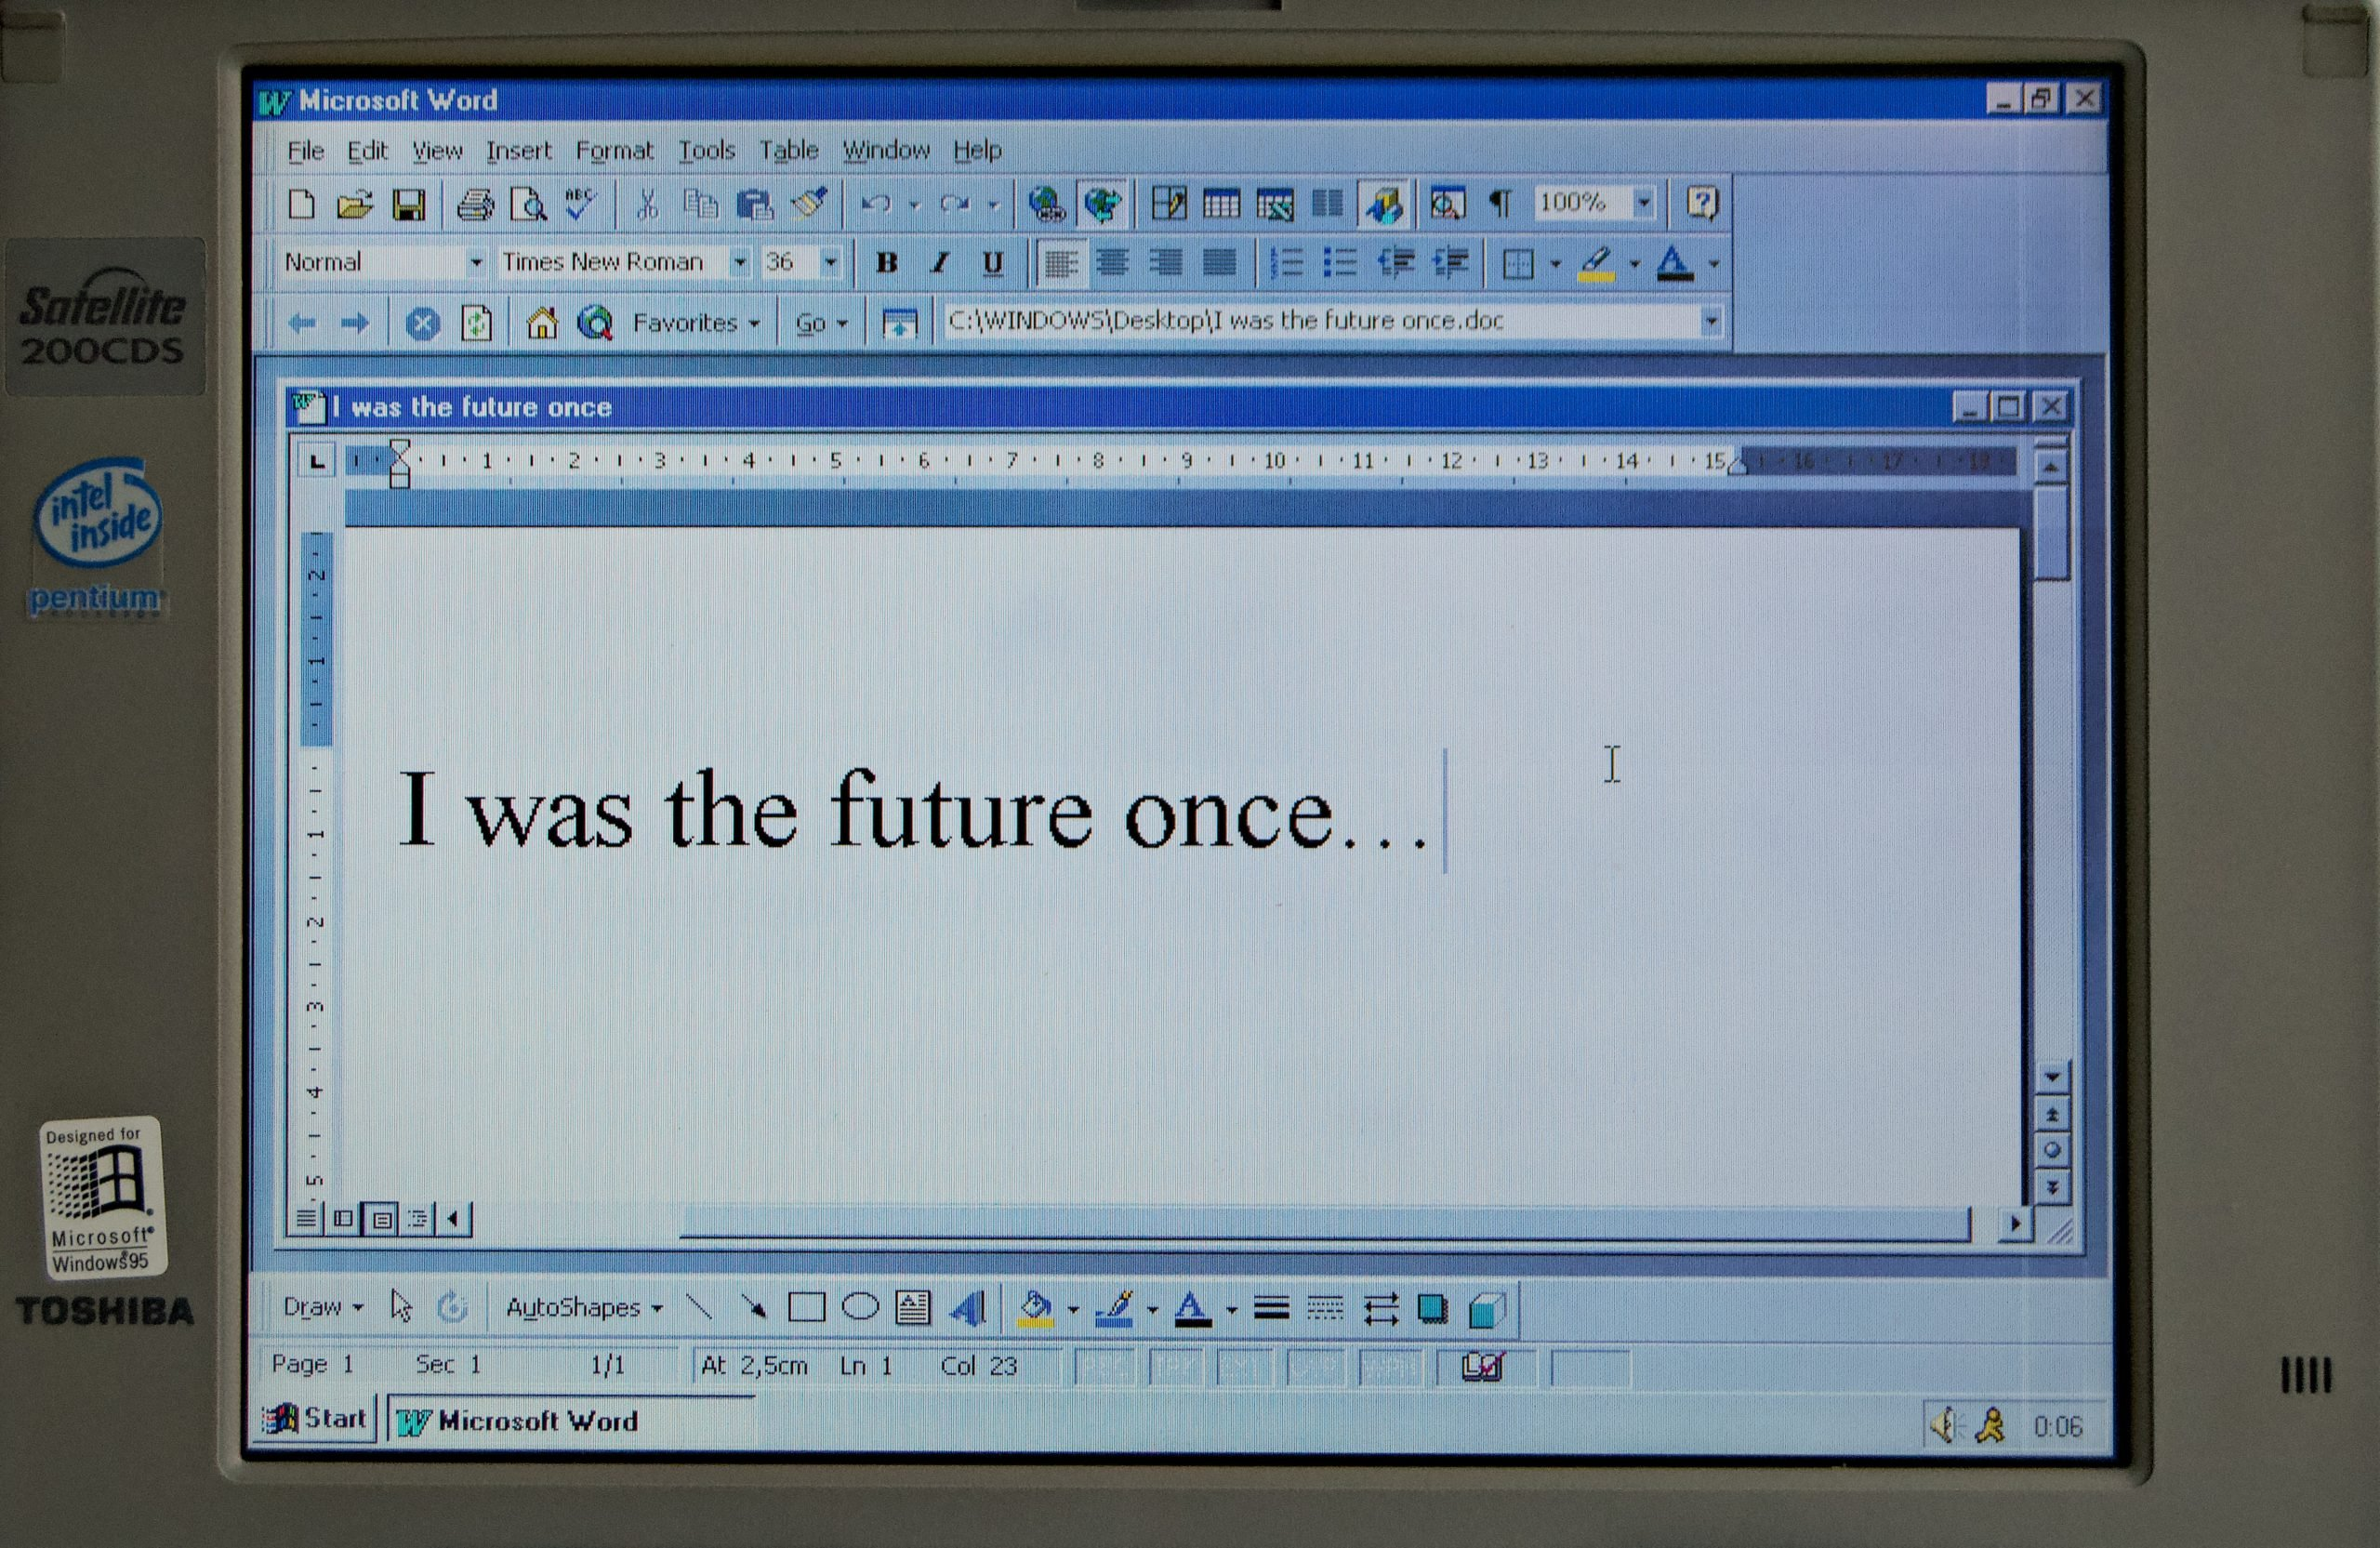 Word Processing Software courses in Microsoft Word from Levels 1-3 at CDS Academy in Chester